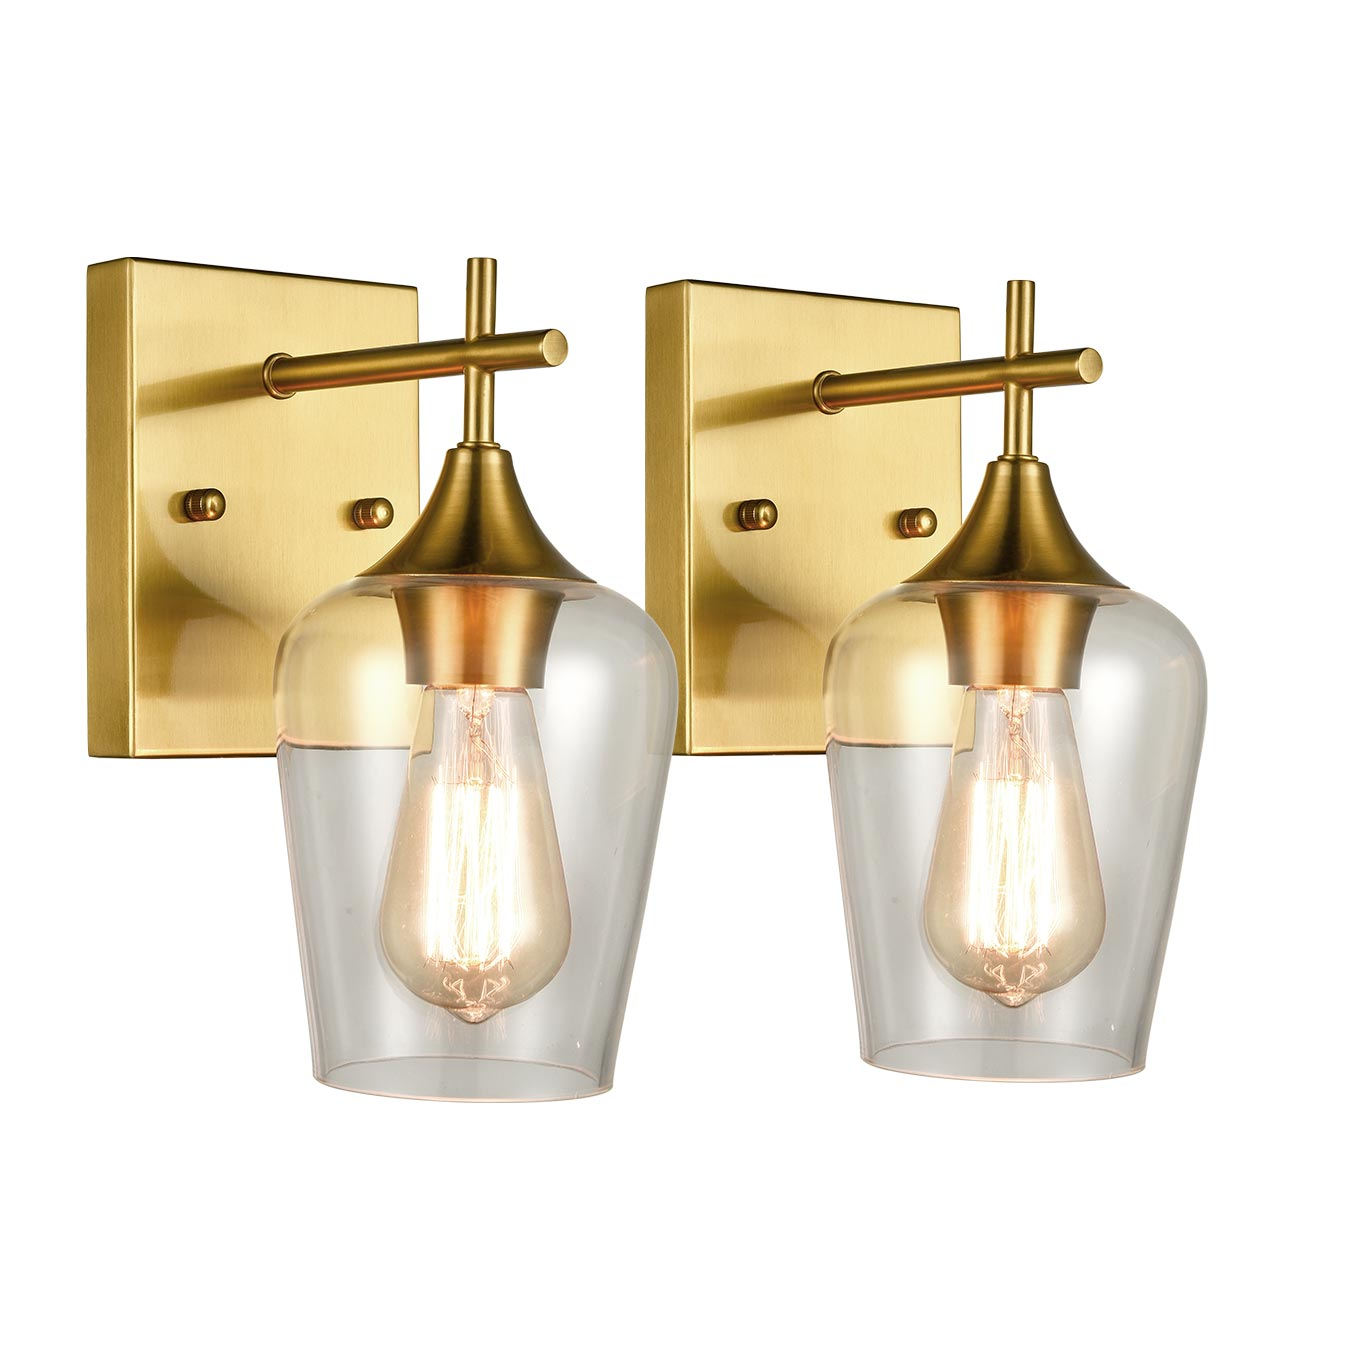 Brass 2 Pack Clear Glass Wall Sconces Industrial Bathroom Vanity Lighting